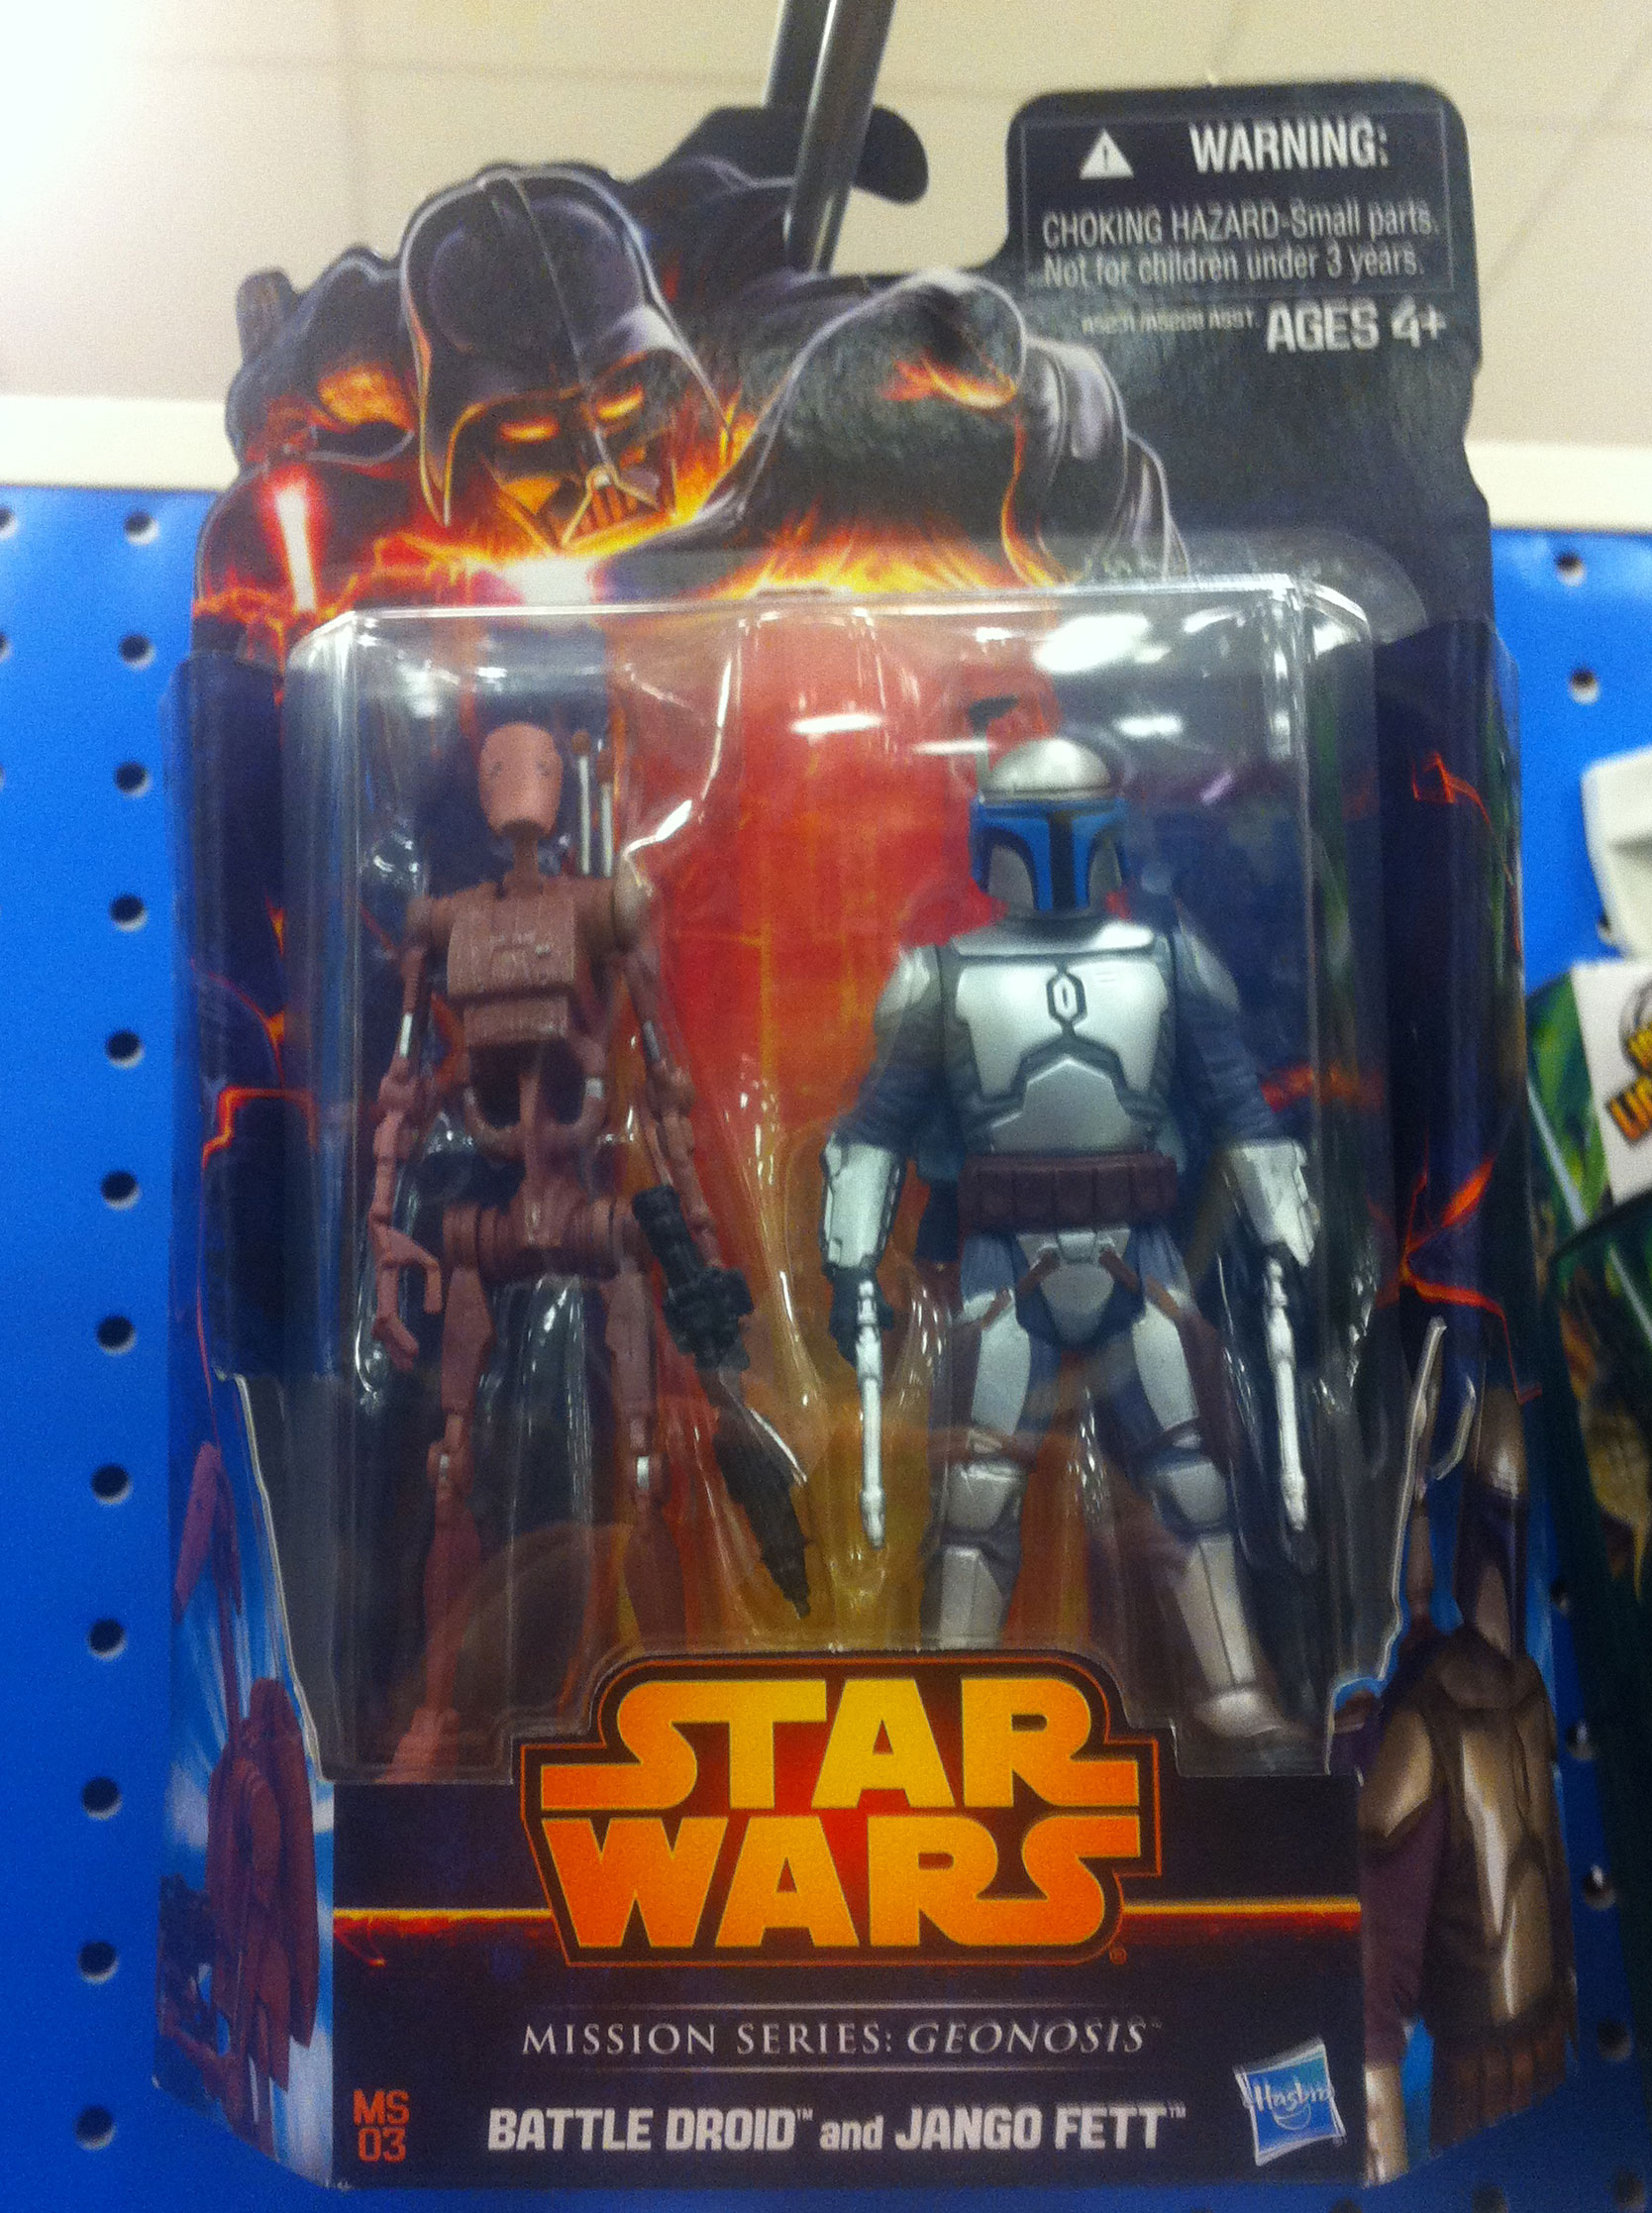 Mission Series: Geonosis Battle Droid and Jango Fett (2013)